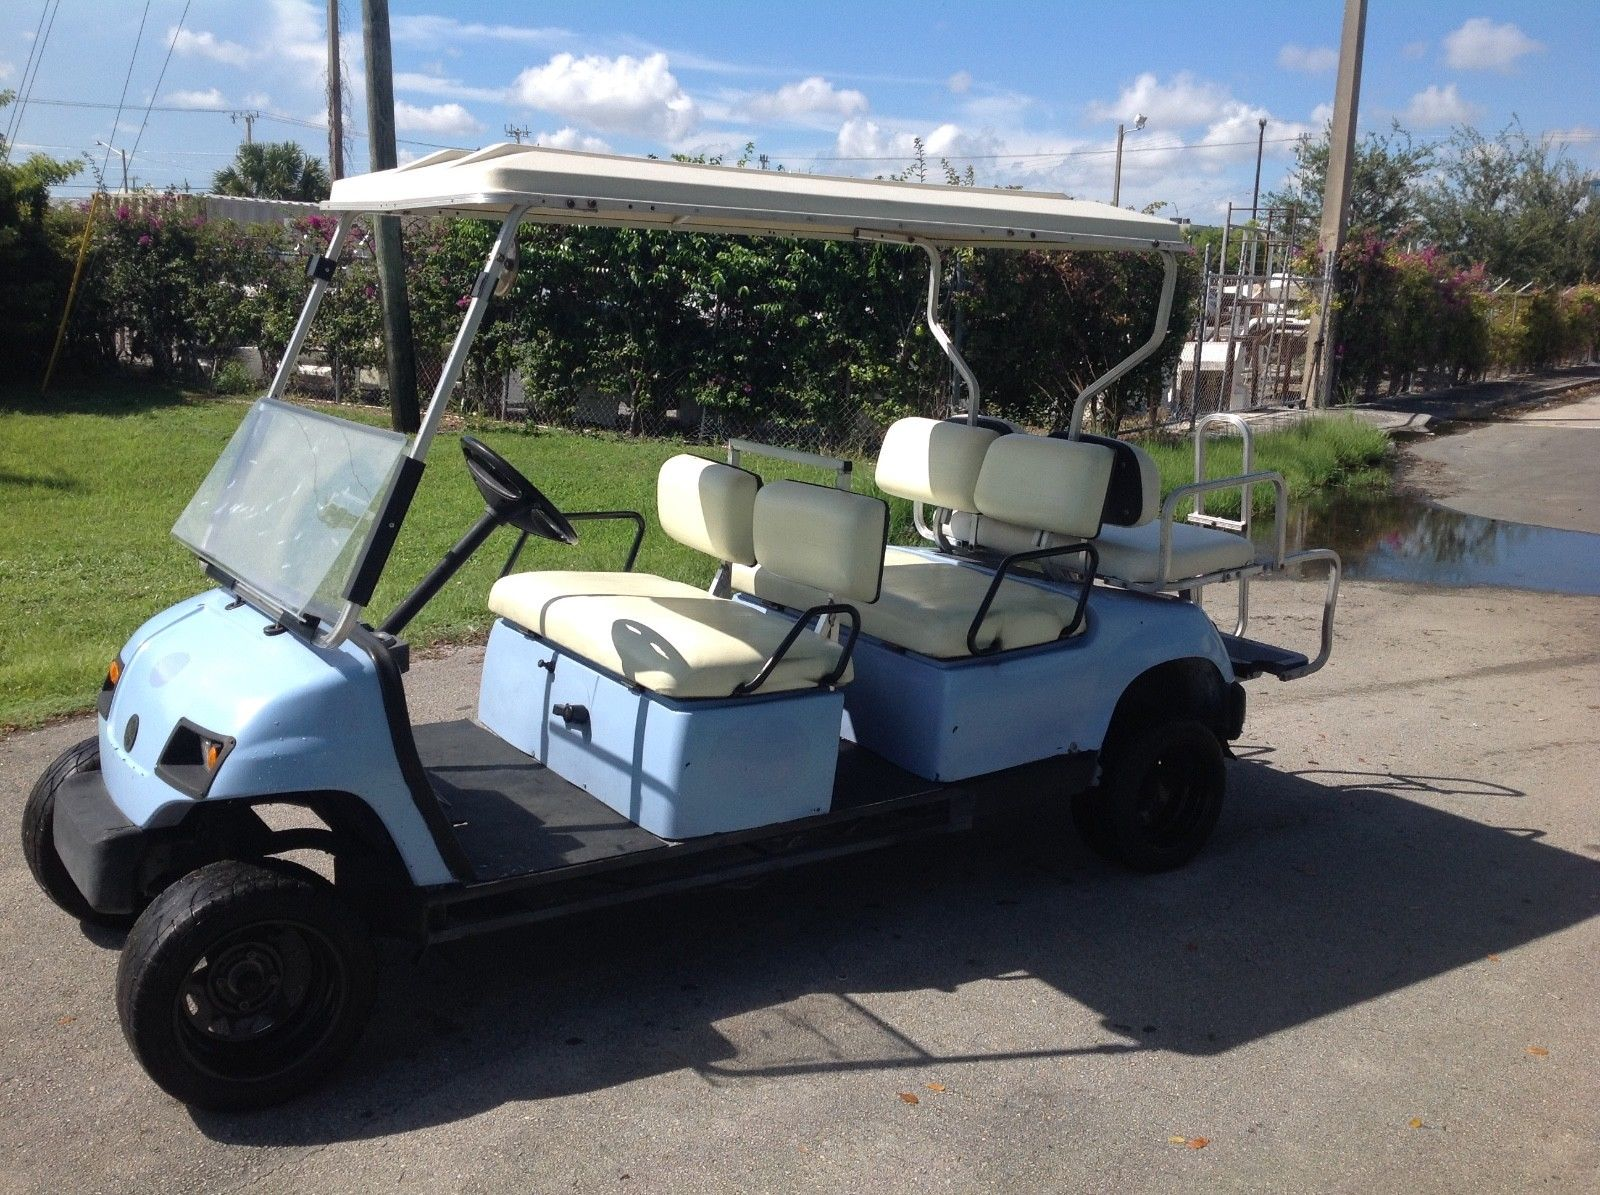 Lifted 2006 Yamaha 6 Passenger Golf Cart For Sale